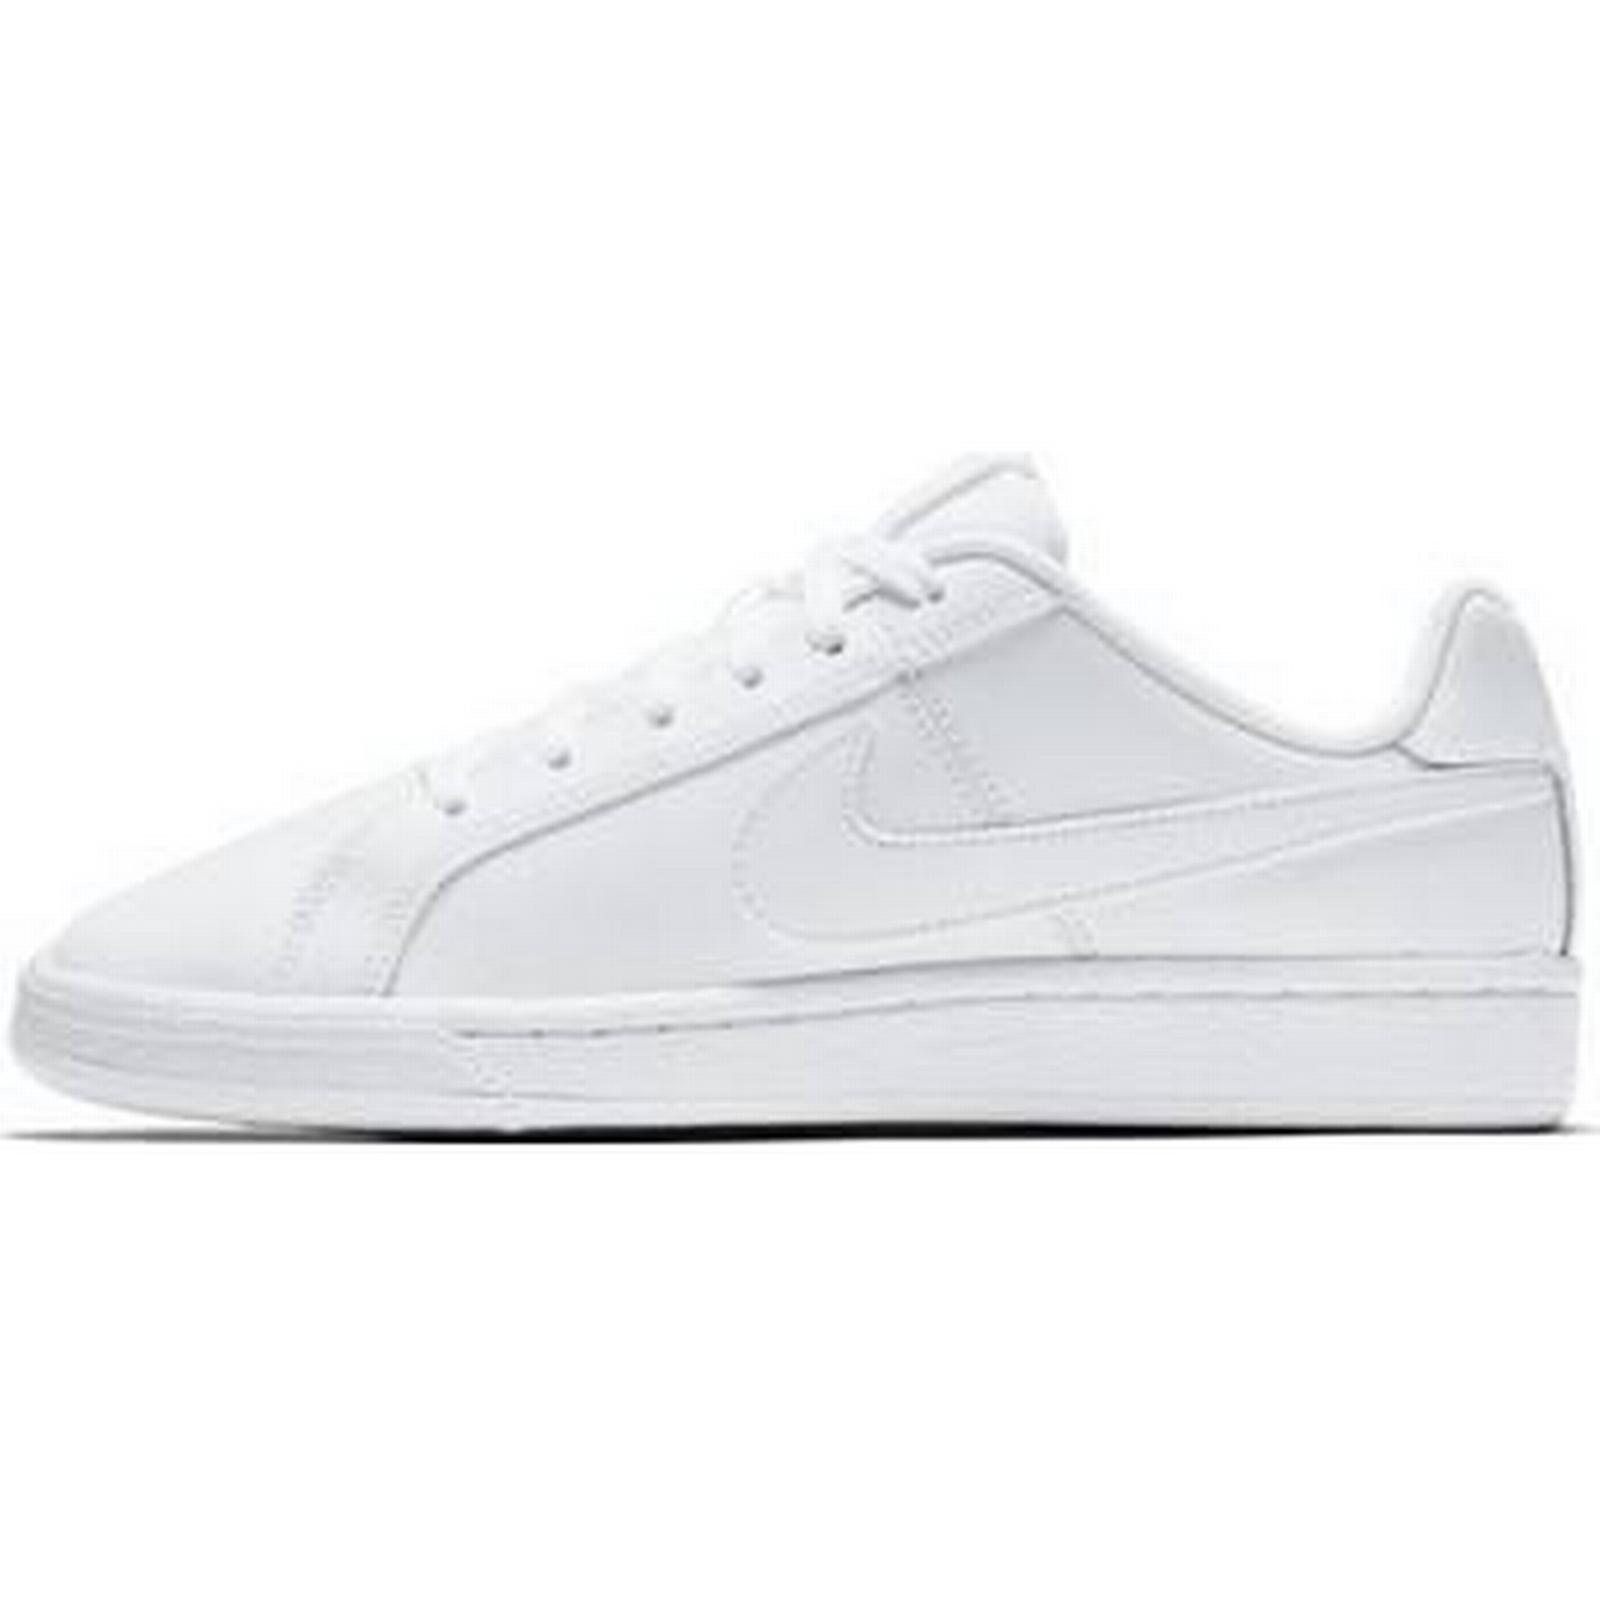 dce612bda7 Spartoo.co.uk Nike Boys' Court Royale (GS) Shoe Shoe Shoe ...